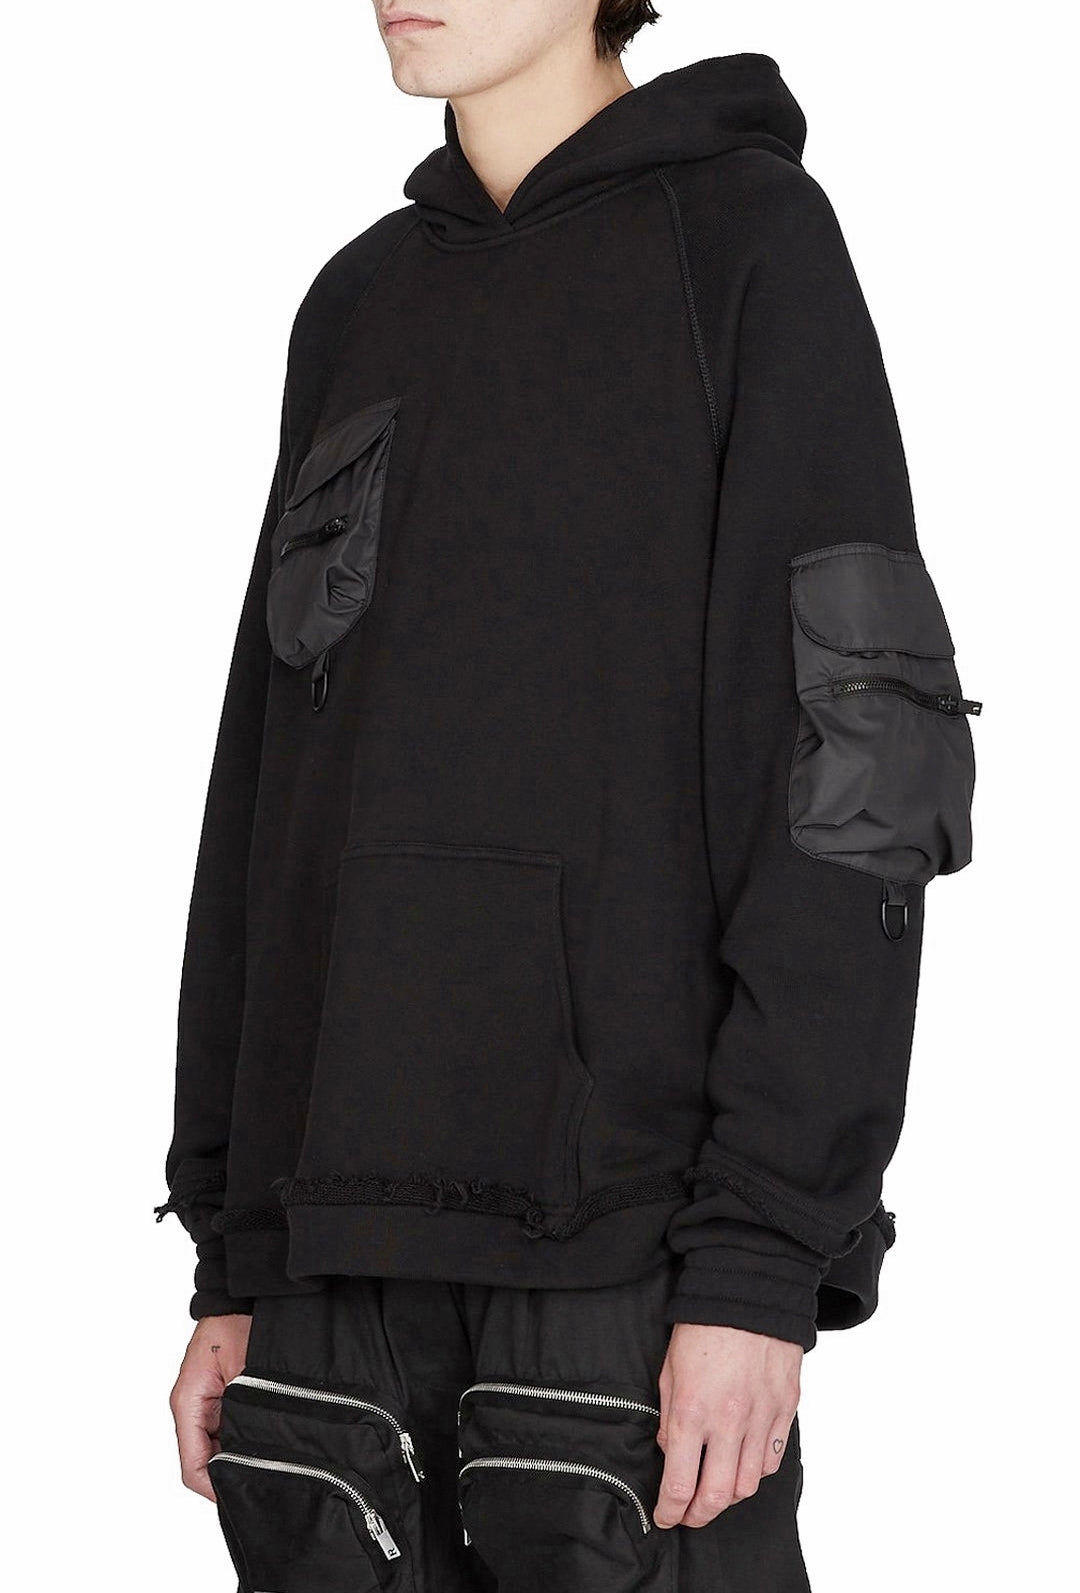 Techwear Military Oversized Hoodie with Tactical Sleeve and Chest Pocket